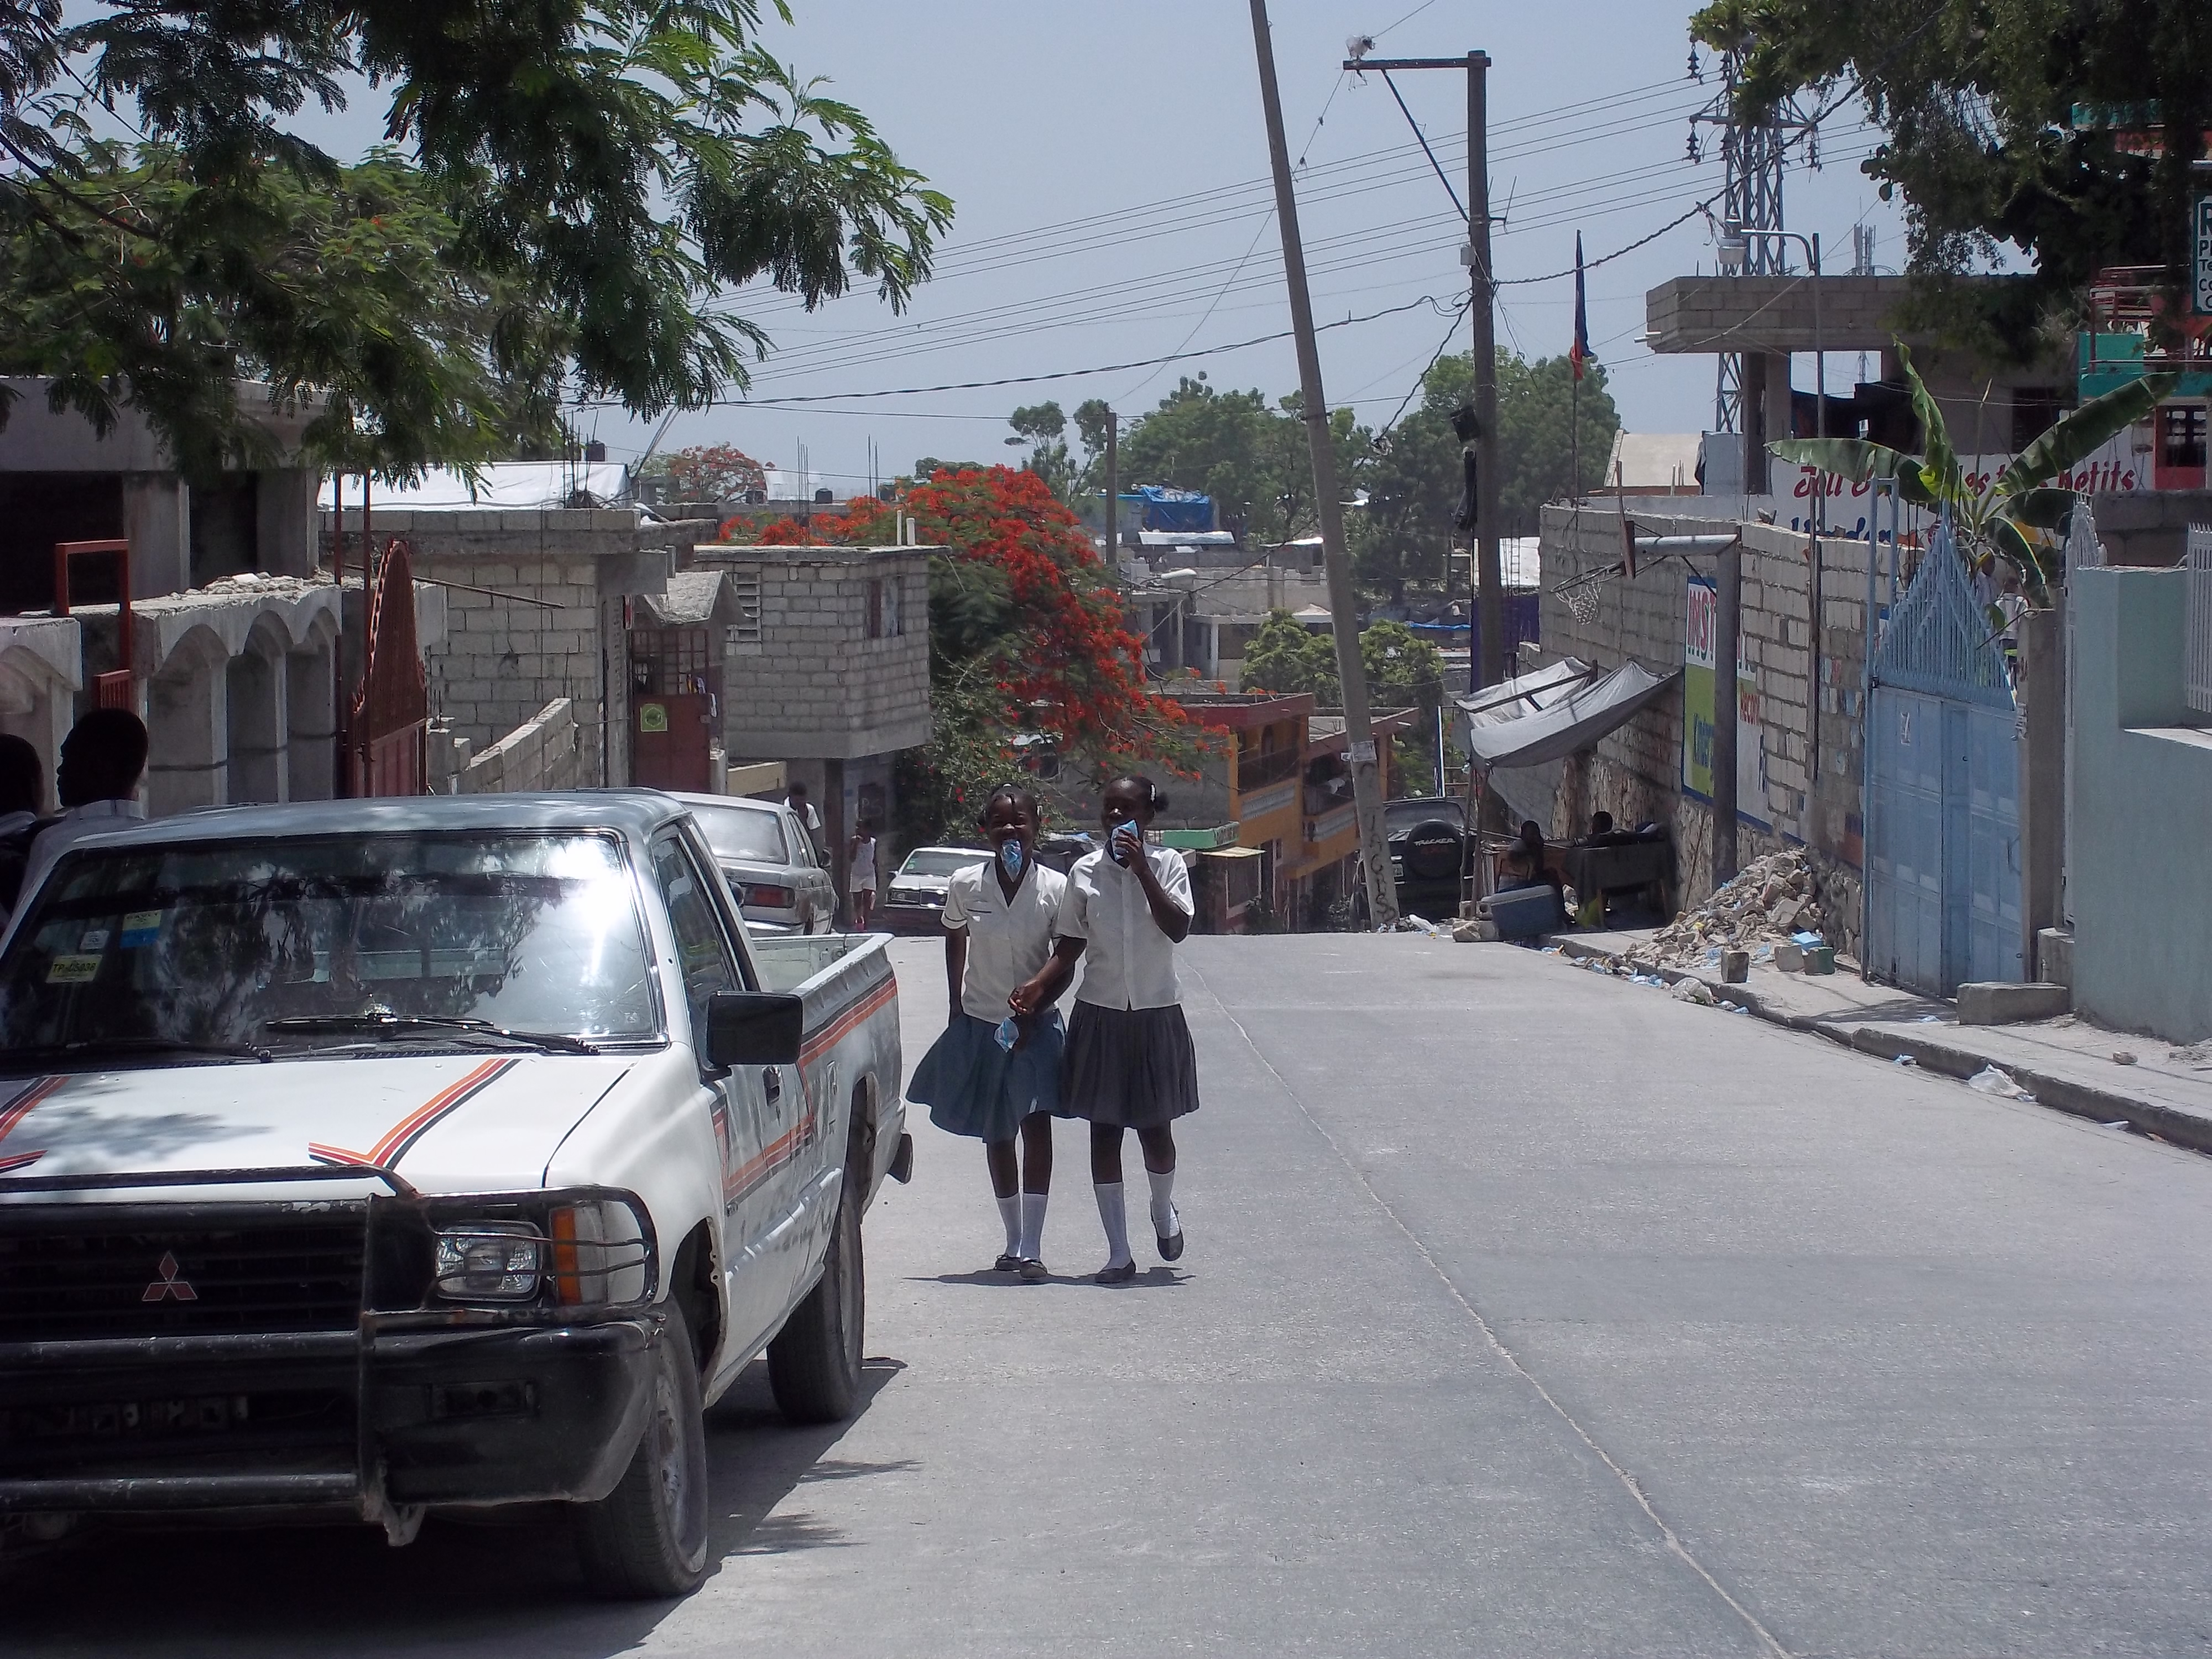 Port au prince today pictures to pin on pinterest pinsdaddy - Www radio lumiere port au prince haiti ...